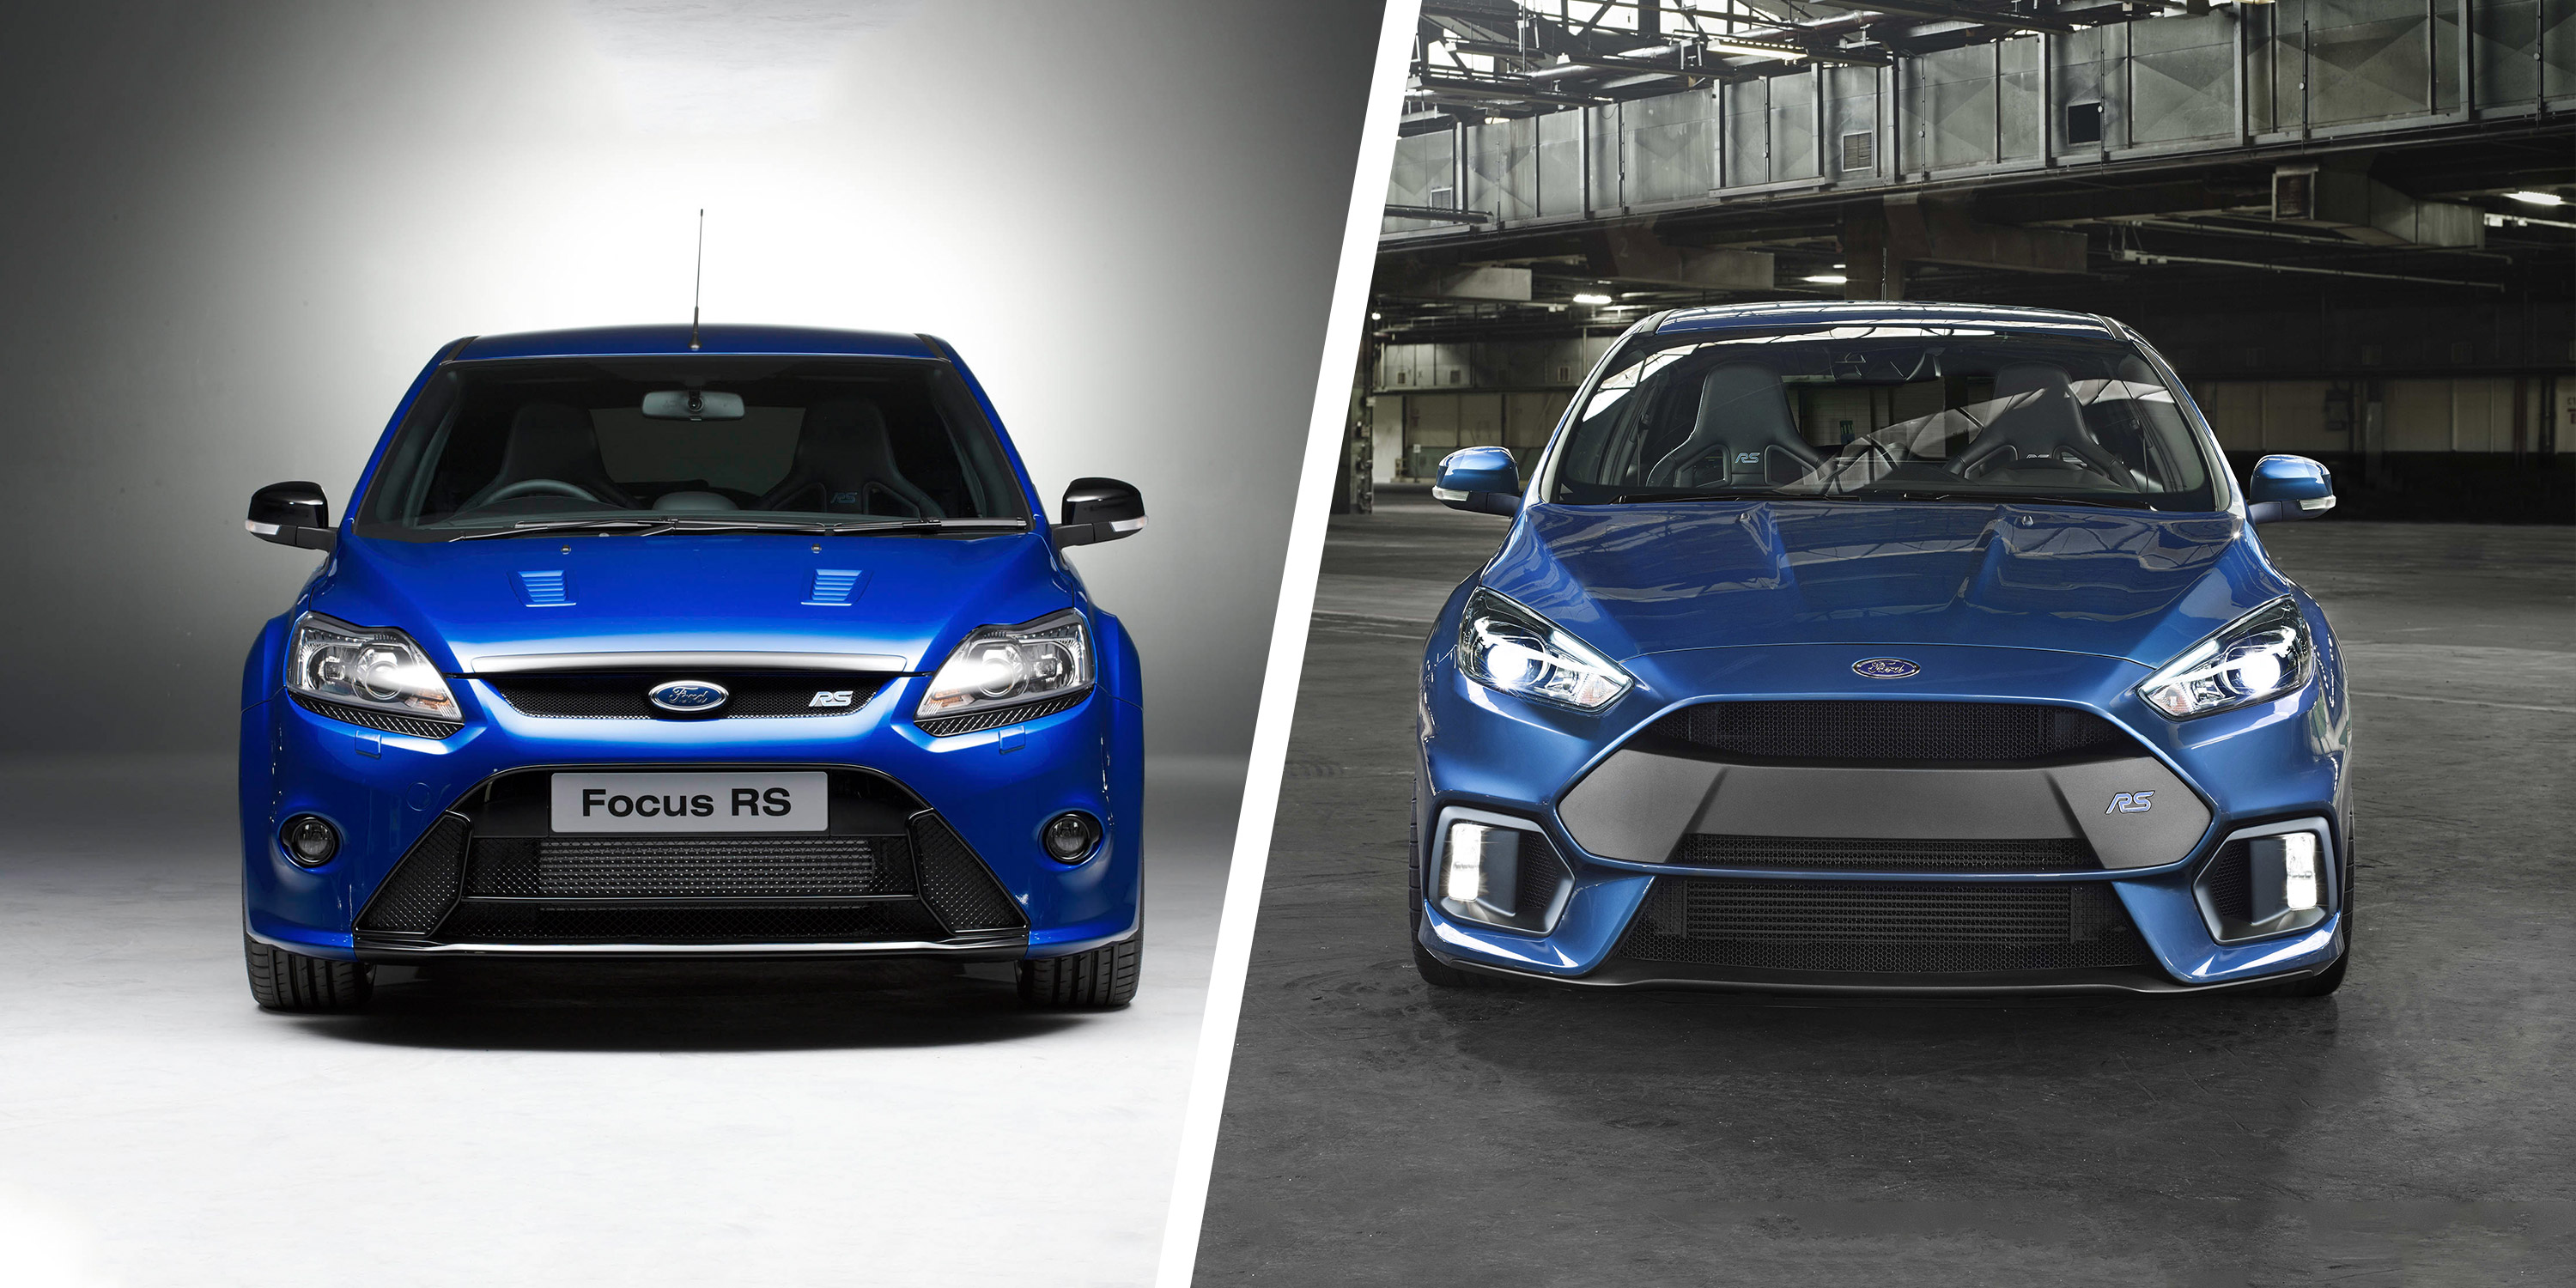 Ford Focus Rs Old Vs New Hot Hatches Compared Carwow